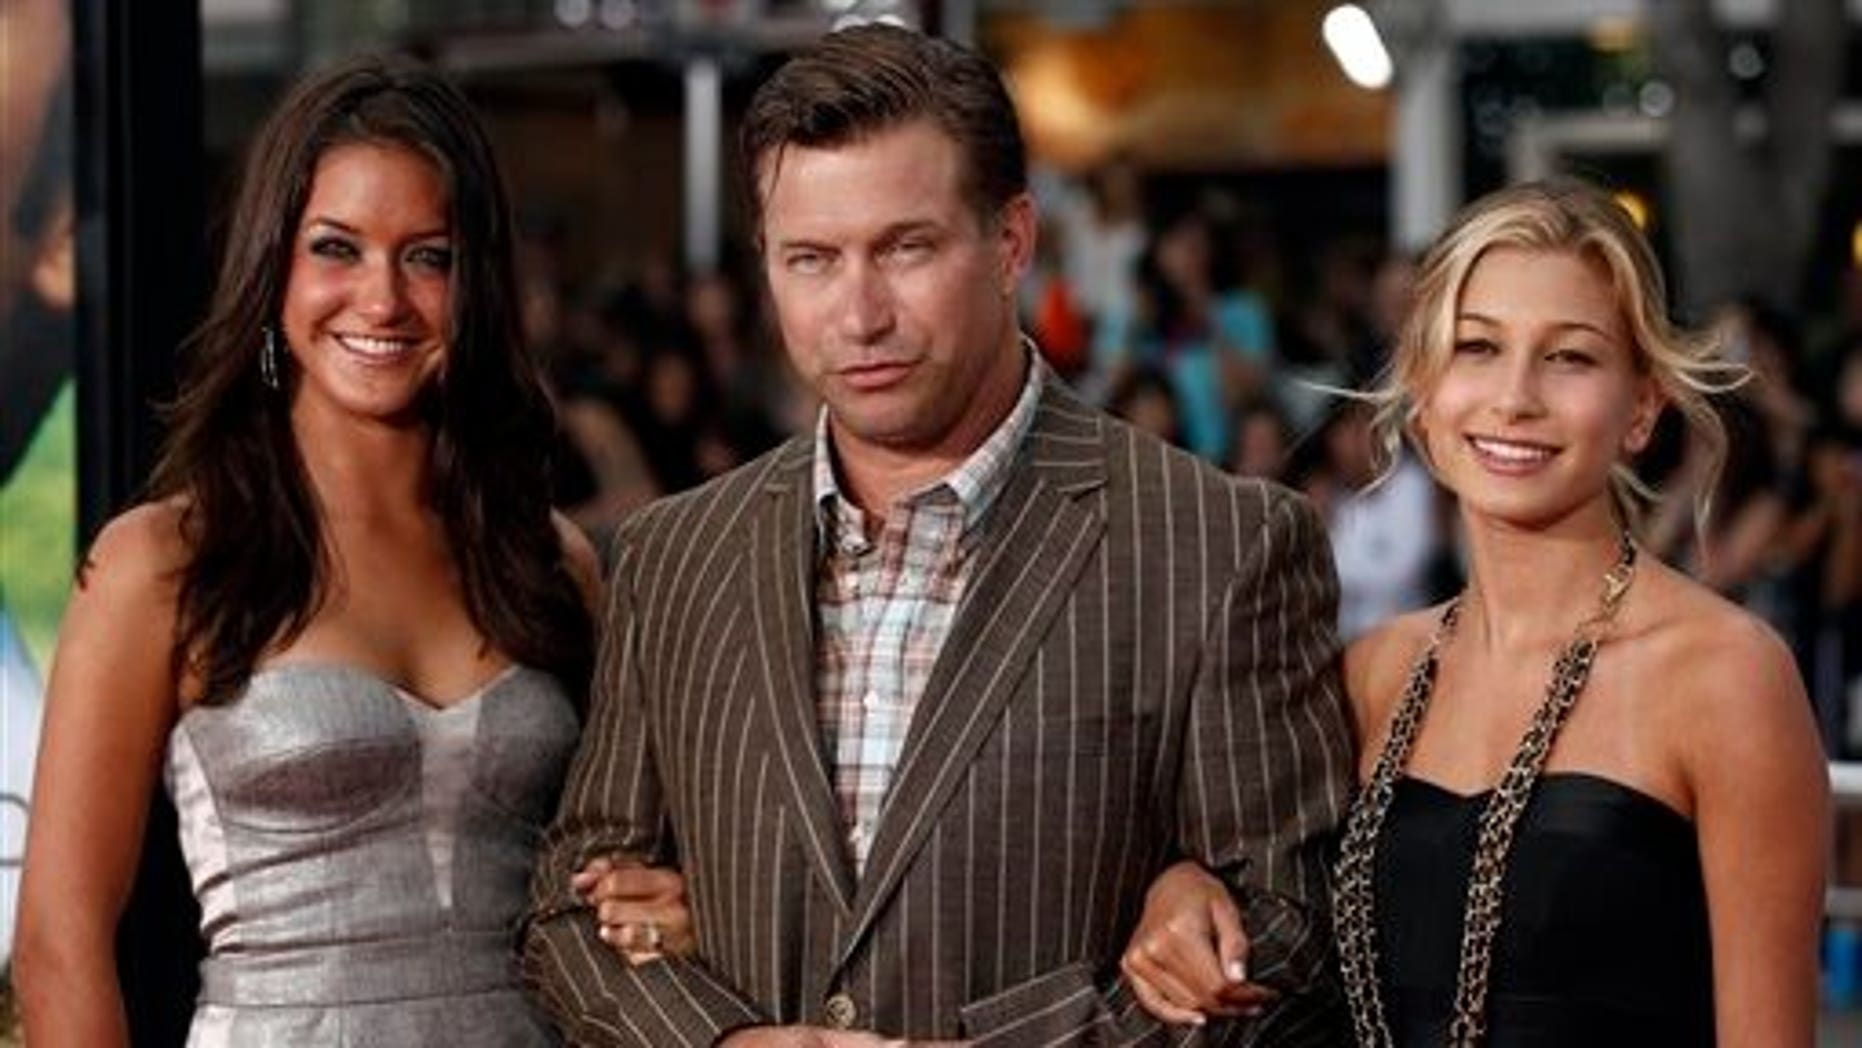 """Actor Stephen Baldwin, center, and his daughters Alaia, left, and Hailey arrive at the premiere of """"Charlie St. Cloud"""" in Los Angeles, Tuesday, July 20, 2010. (AP Photo/Matt Sayles)"""